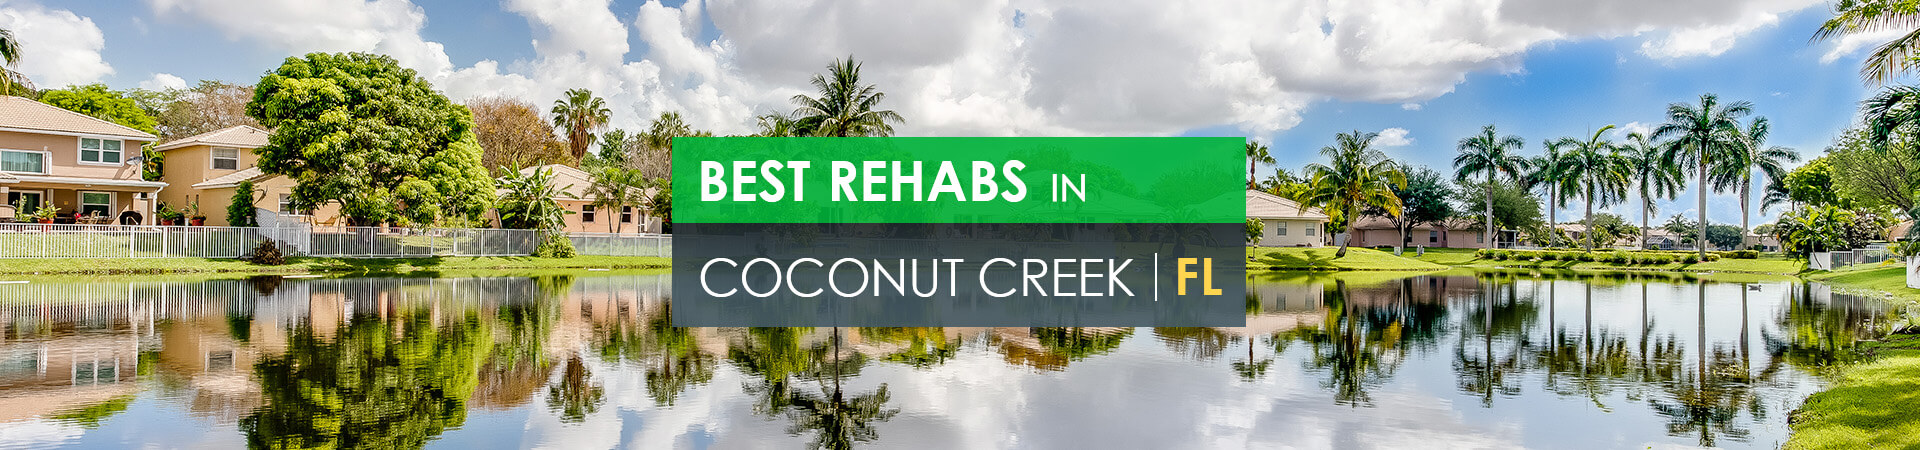 Best rehabs in Coconut Creek, FL